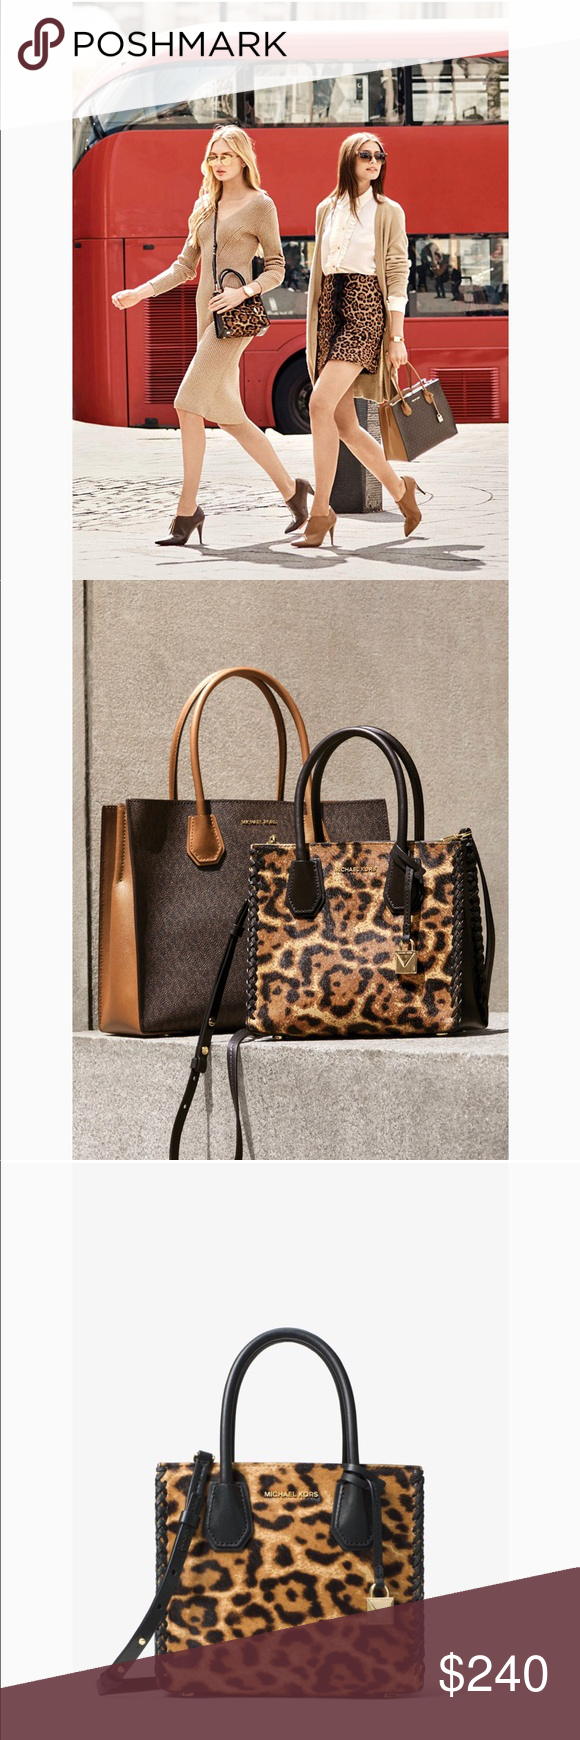 42d4e7d12207 Michael Kors Mercer leopard calf hair crossbody Finished with smooth  leather tophandles and our new minimalist lock charm, this carryall  combines signature ...